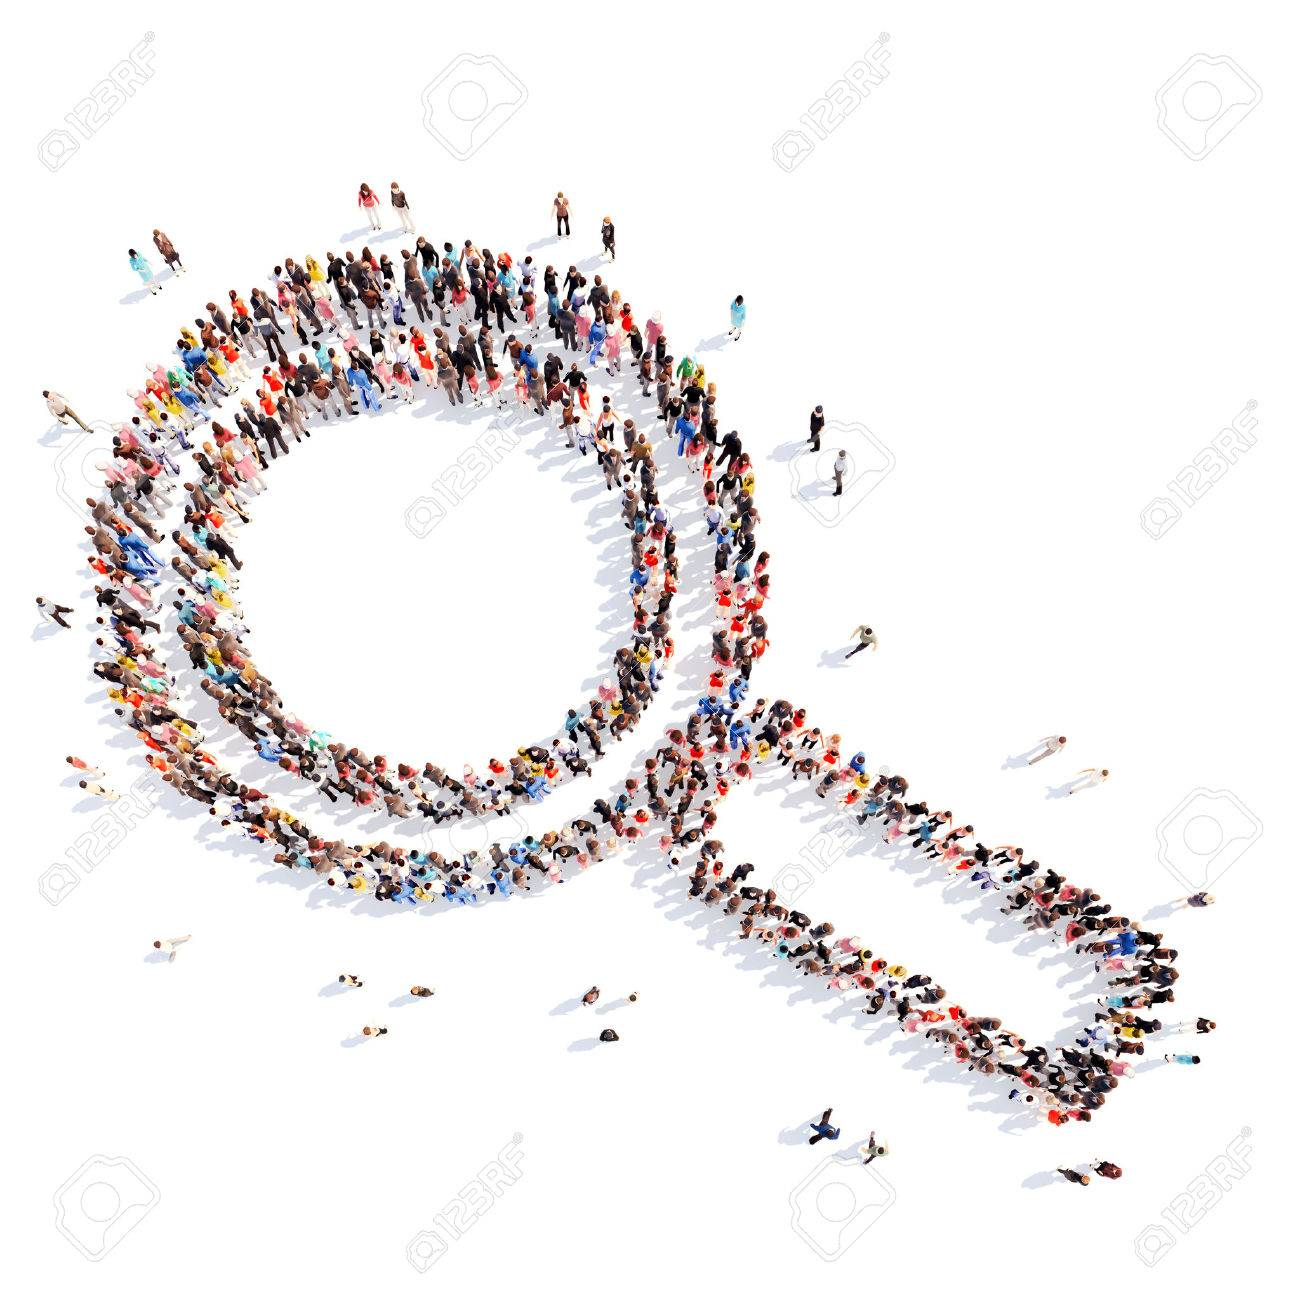 A large group of people in the shape of a magnifying glass. Isolated, white background. - 39717040